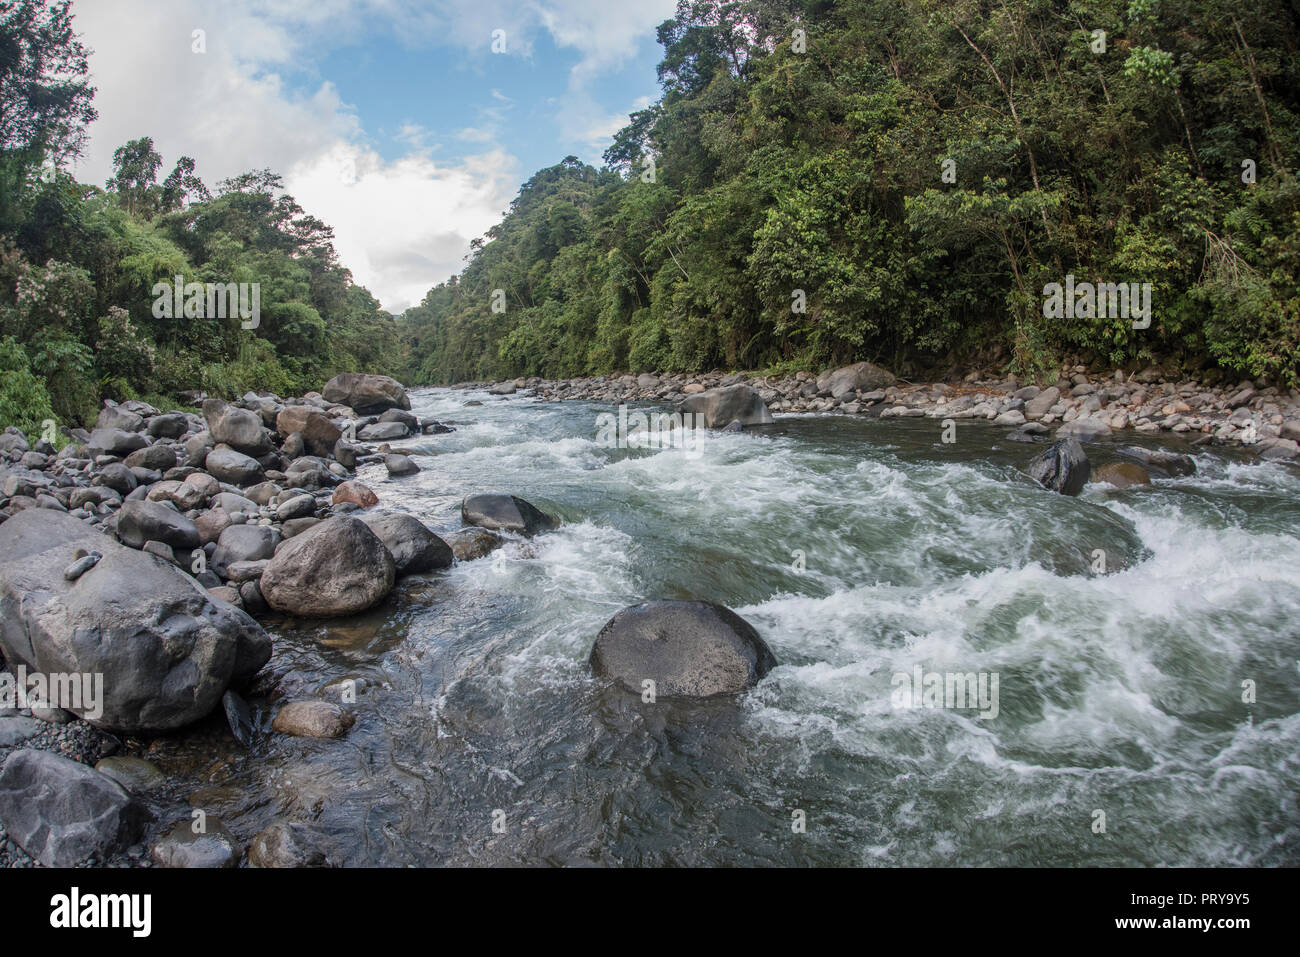 A high altitude river flowing through the cloud forest in Manu National Park, Peru. - Stock Image